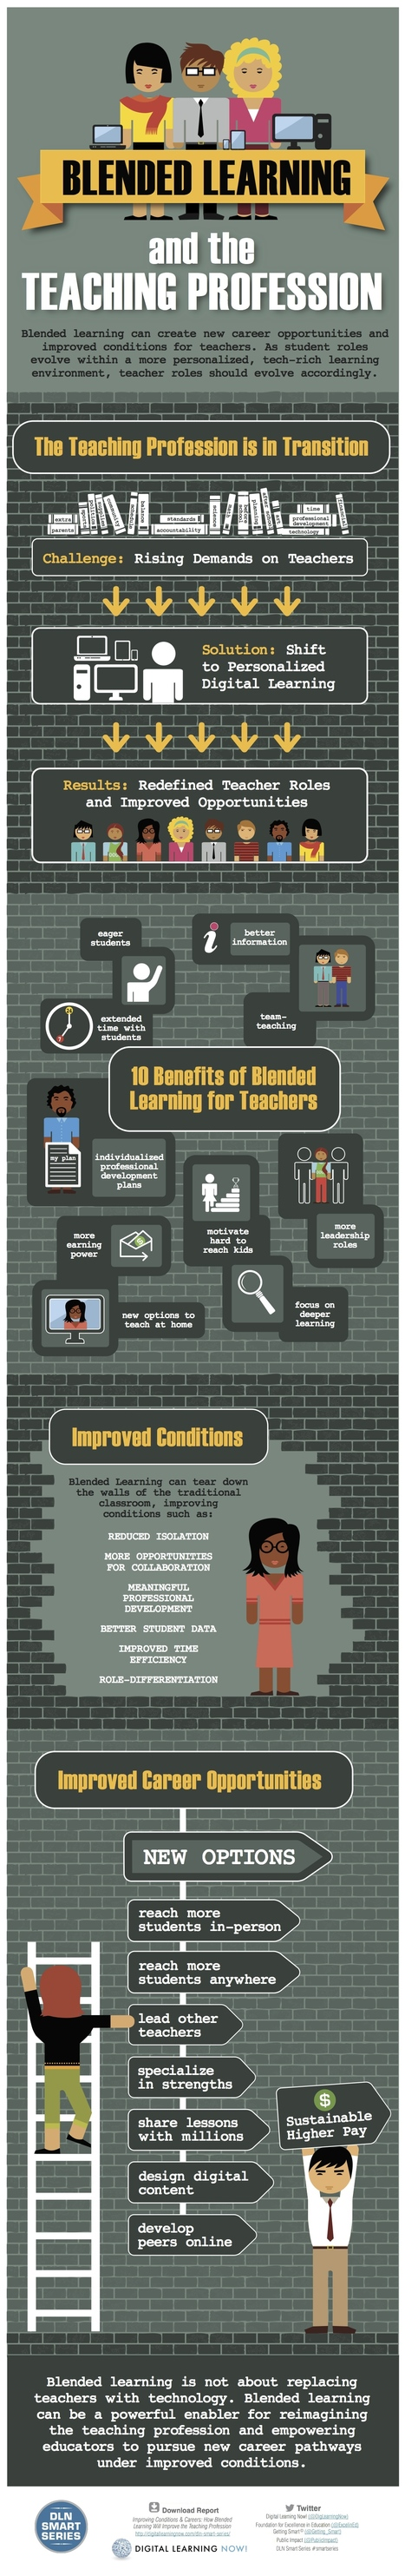 Blended Learning Teaching Infographic | ENGLISH LEARNING 2.0 | Scoop.it